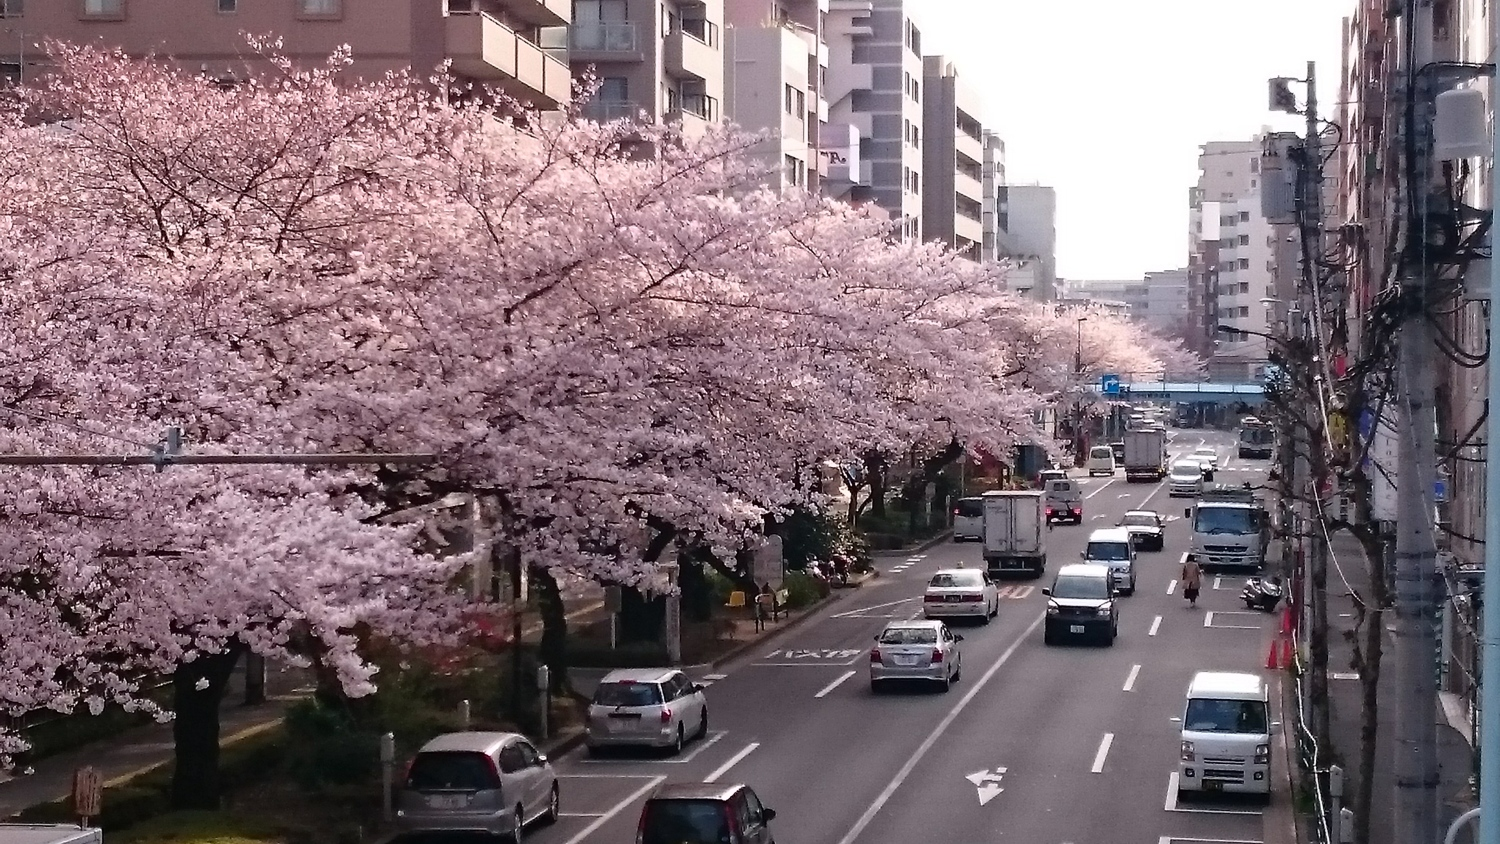 Line of cherry blossoms